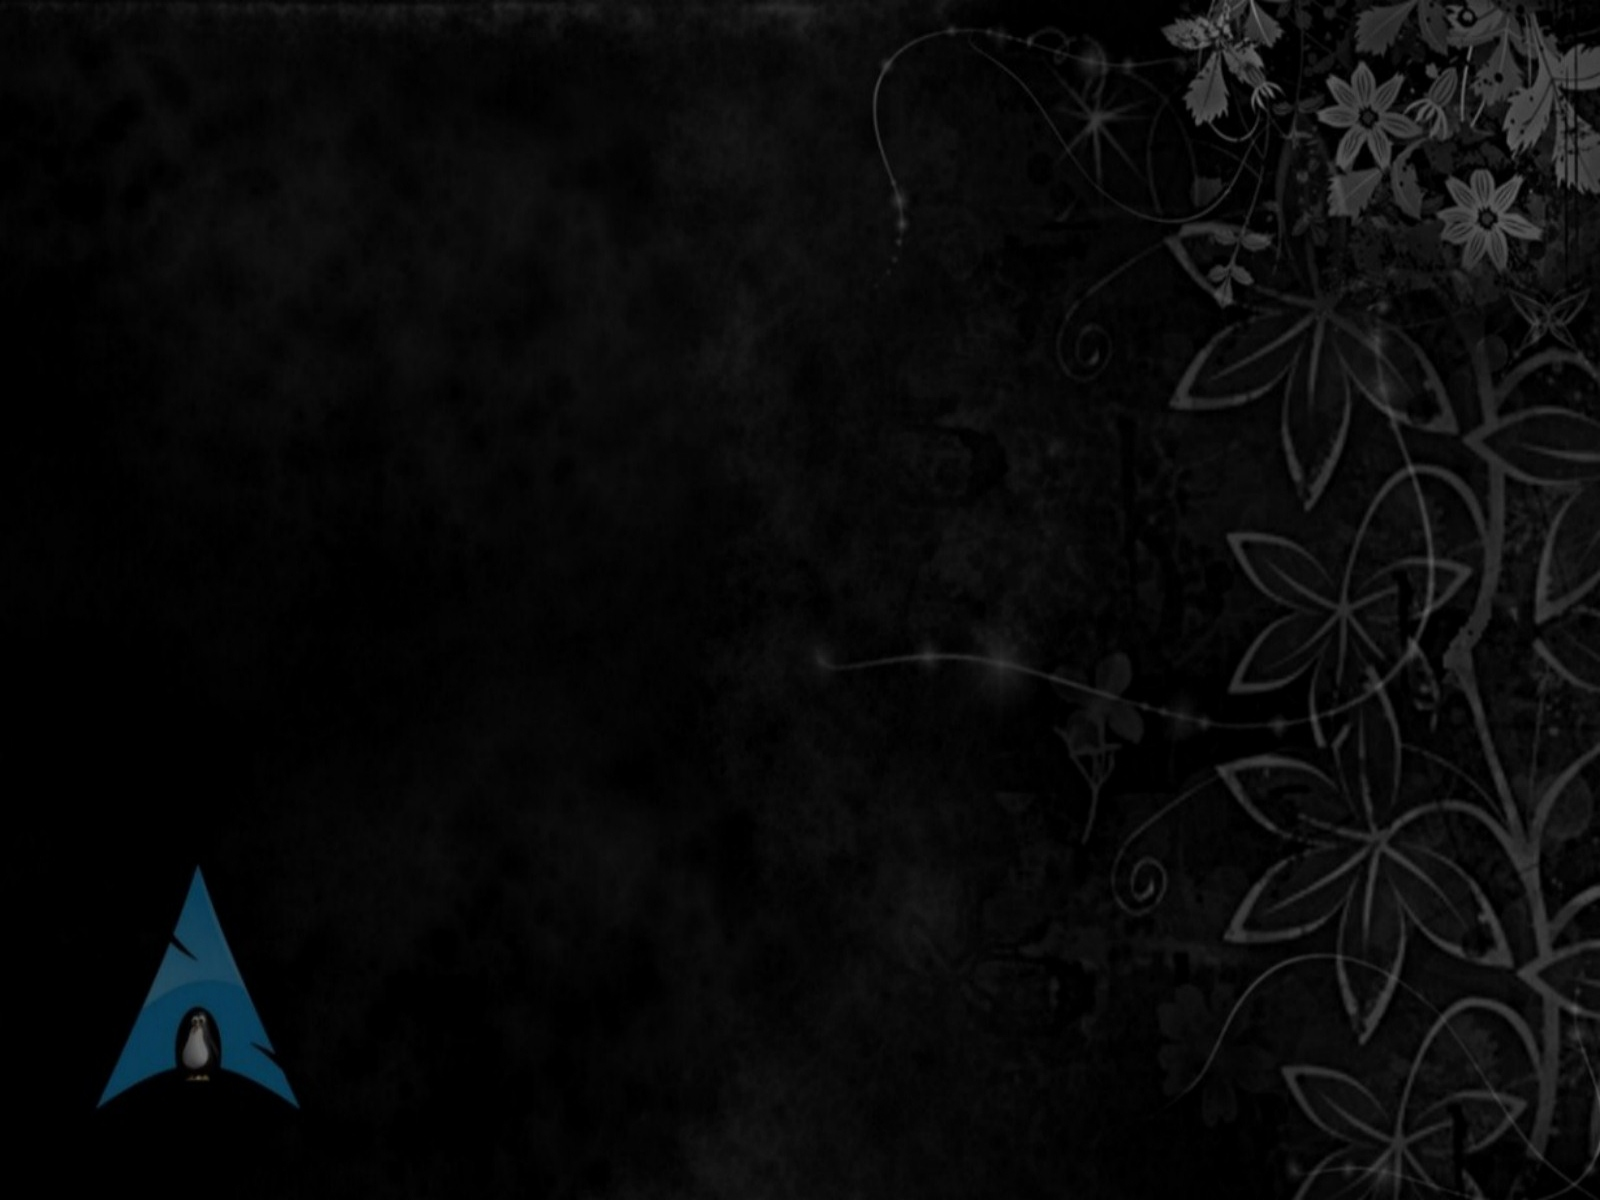 Dark Arch Linux Wallpaper Black Arch Linux Widescreen Background 1600x1200